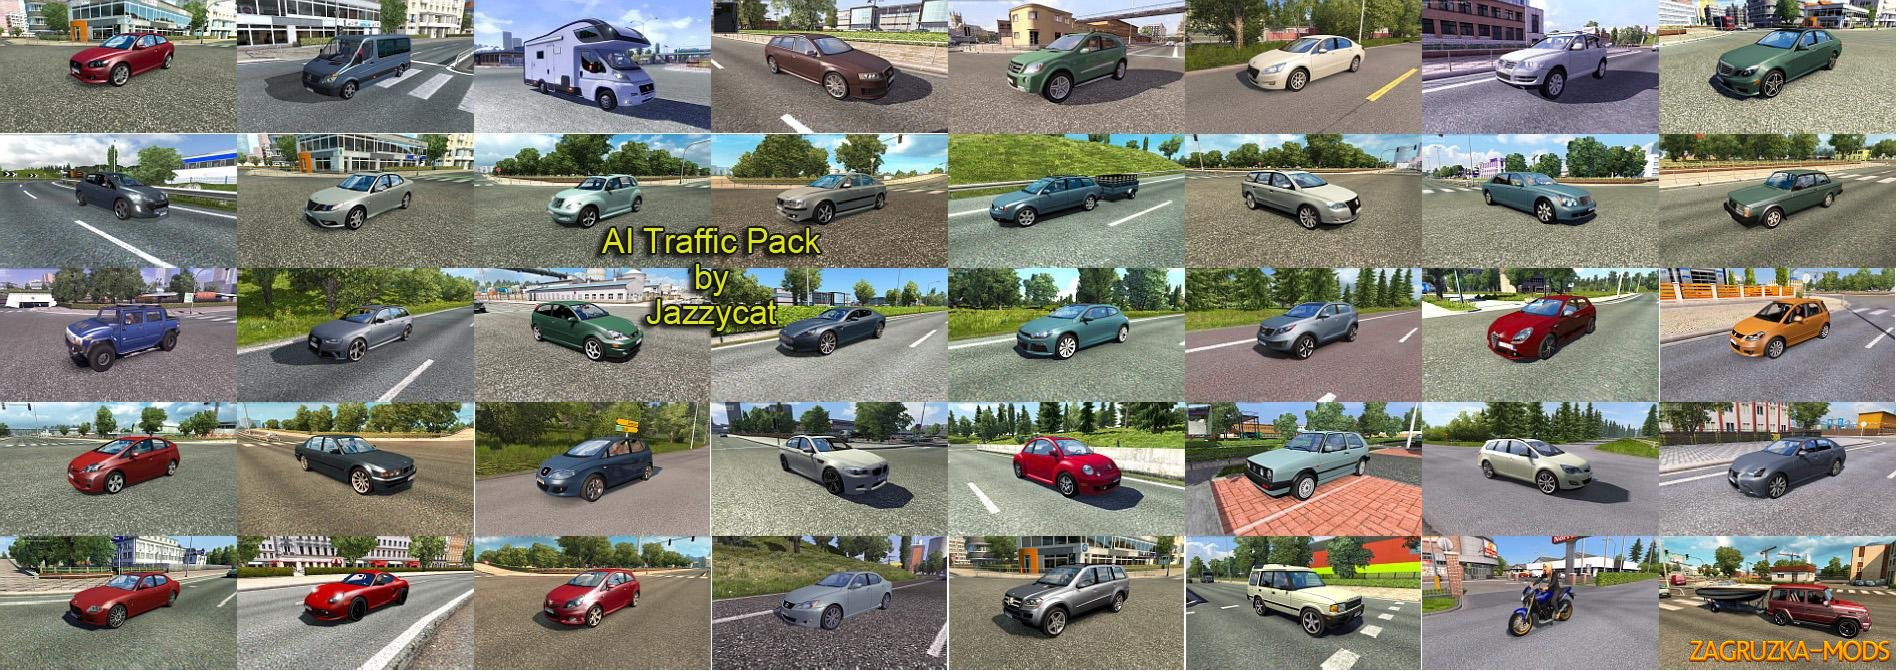 AI TRAFFIC PACK BY JAZZYCAT V3.1